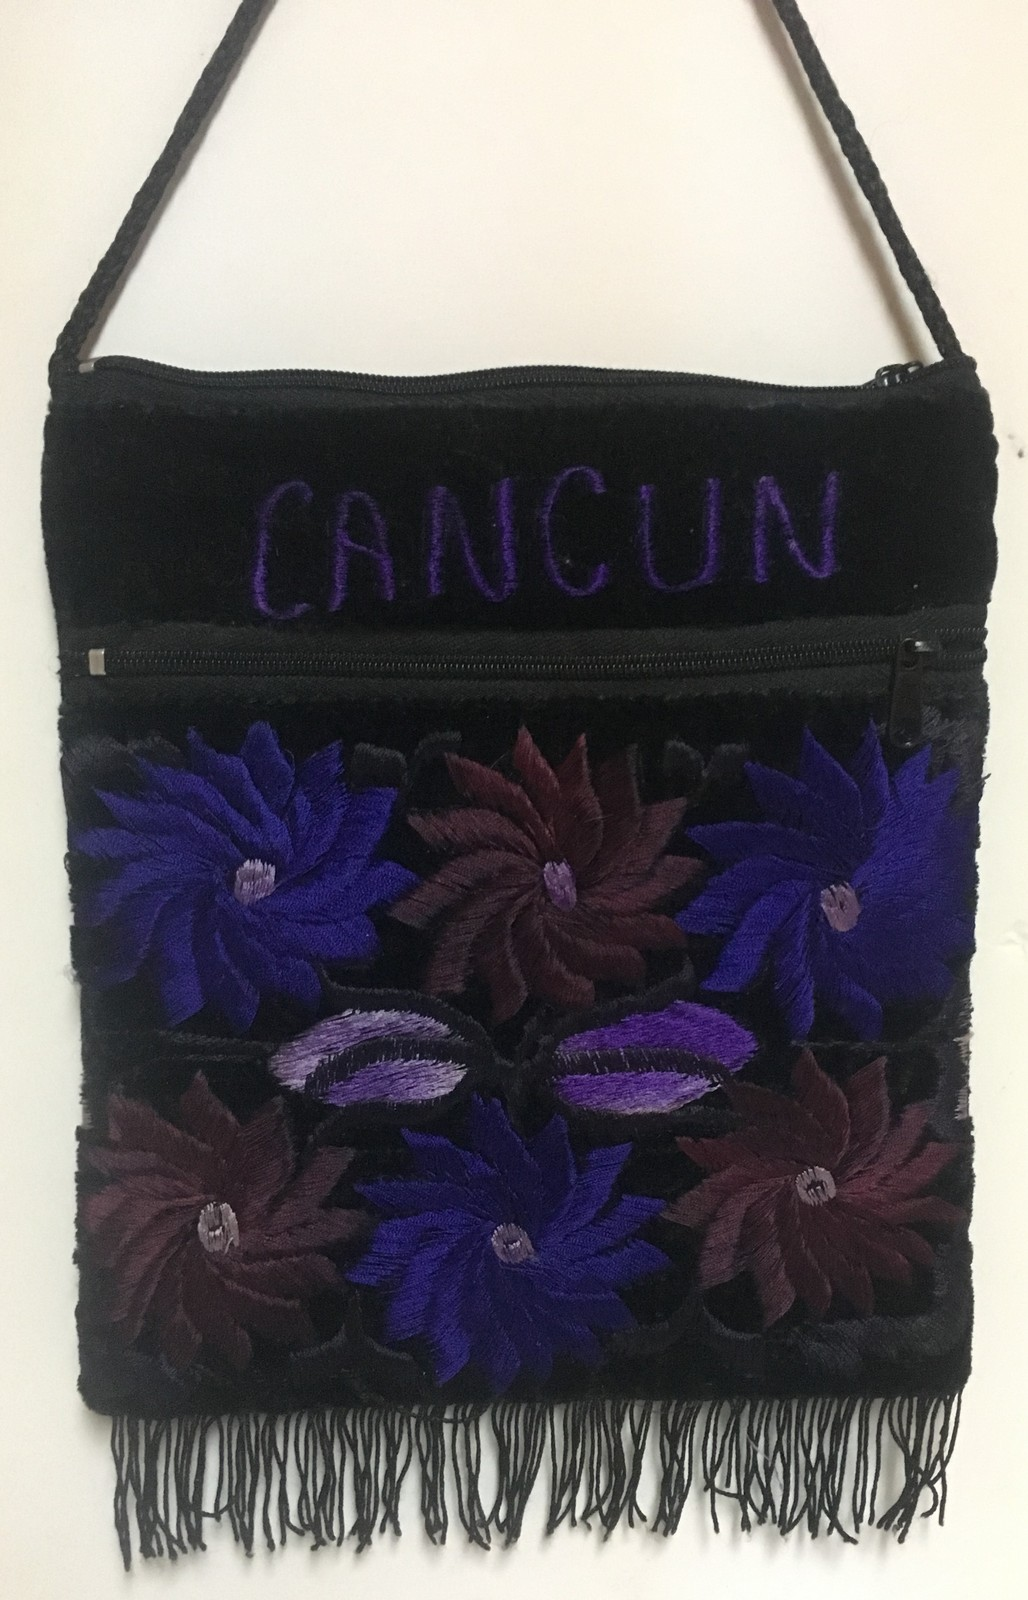 CANCUN Embroidered Velveteen Cross Body Purse Pouch Rope Strap Blue Floral